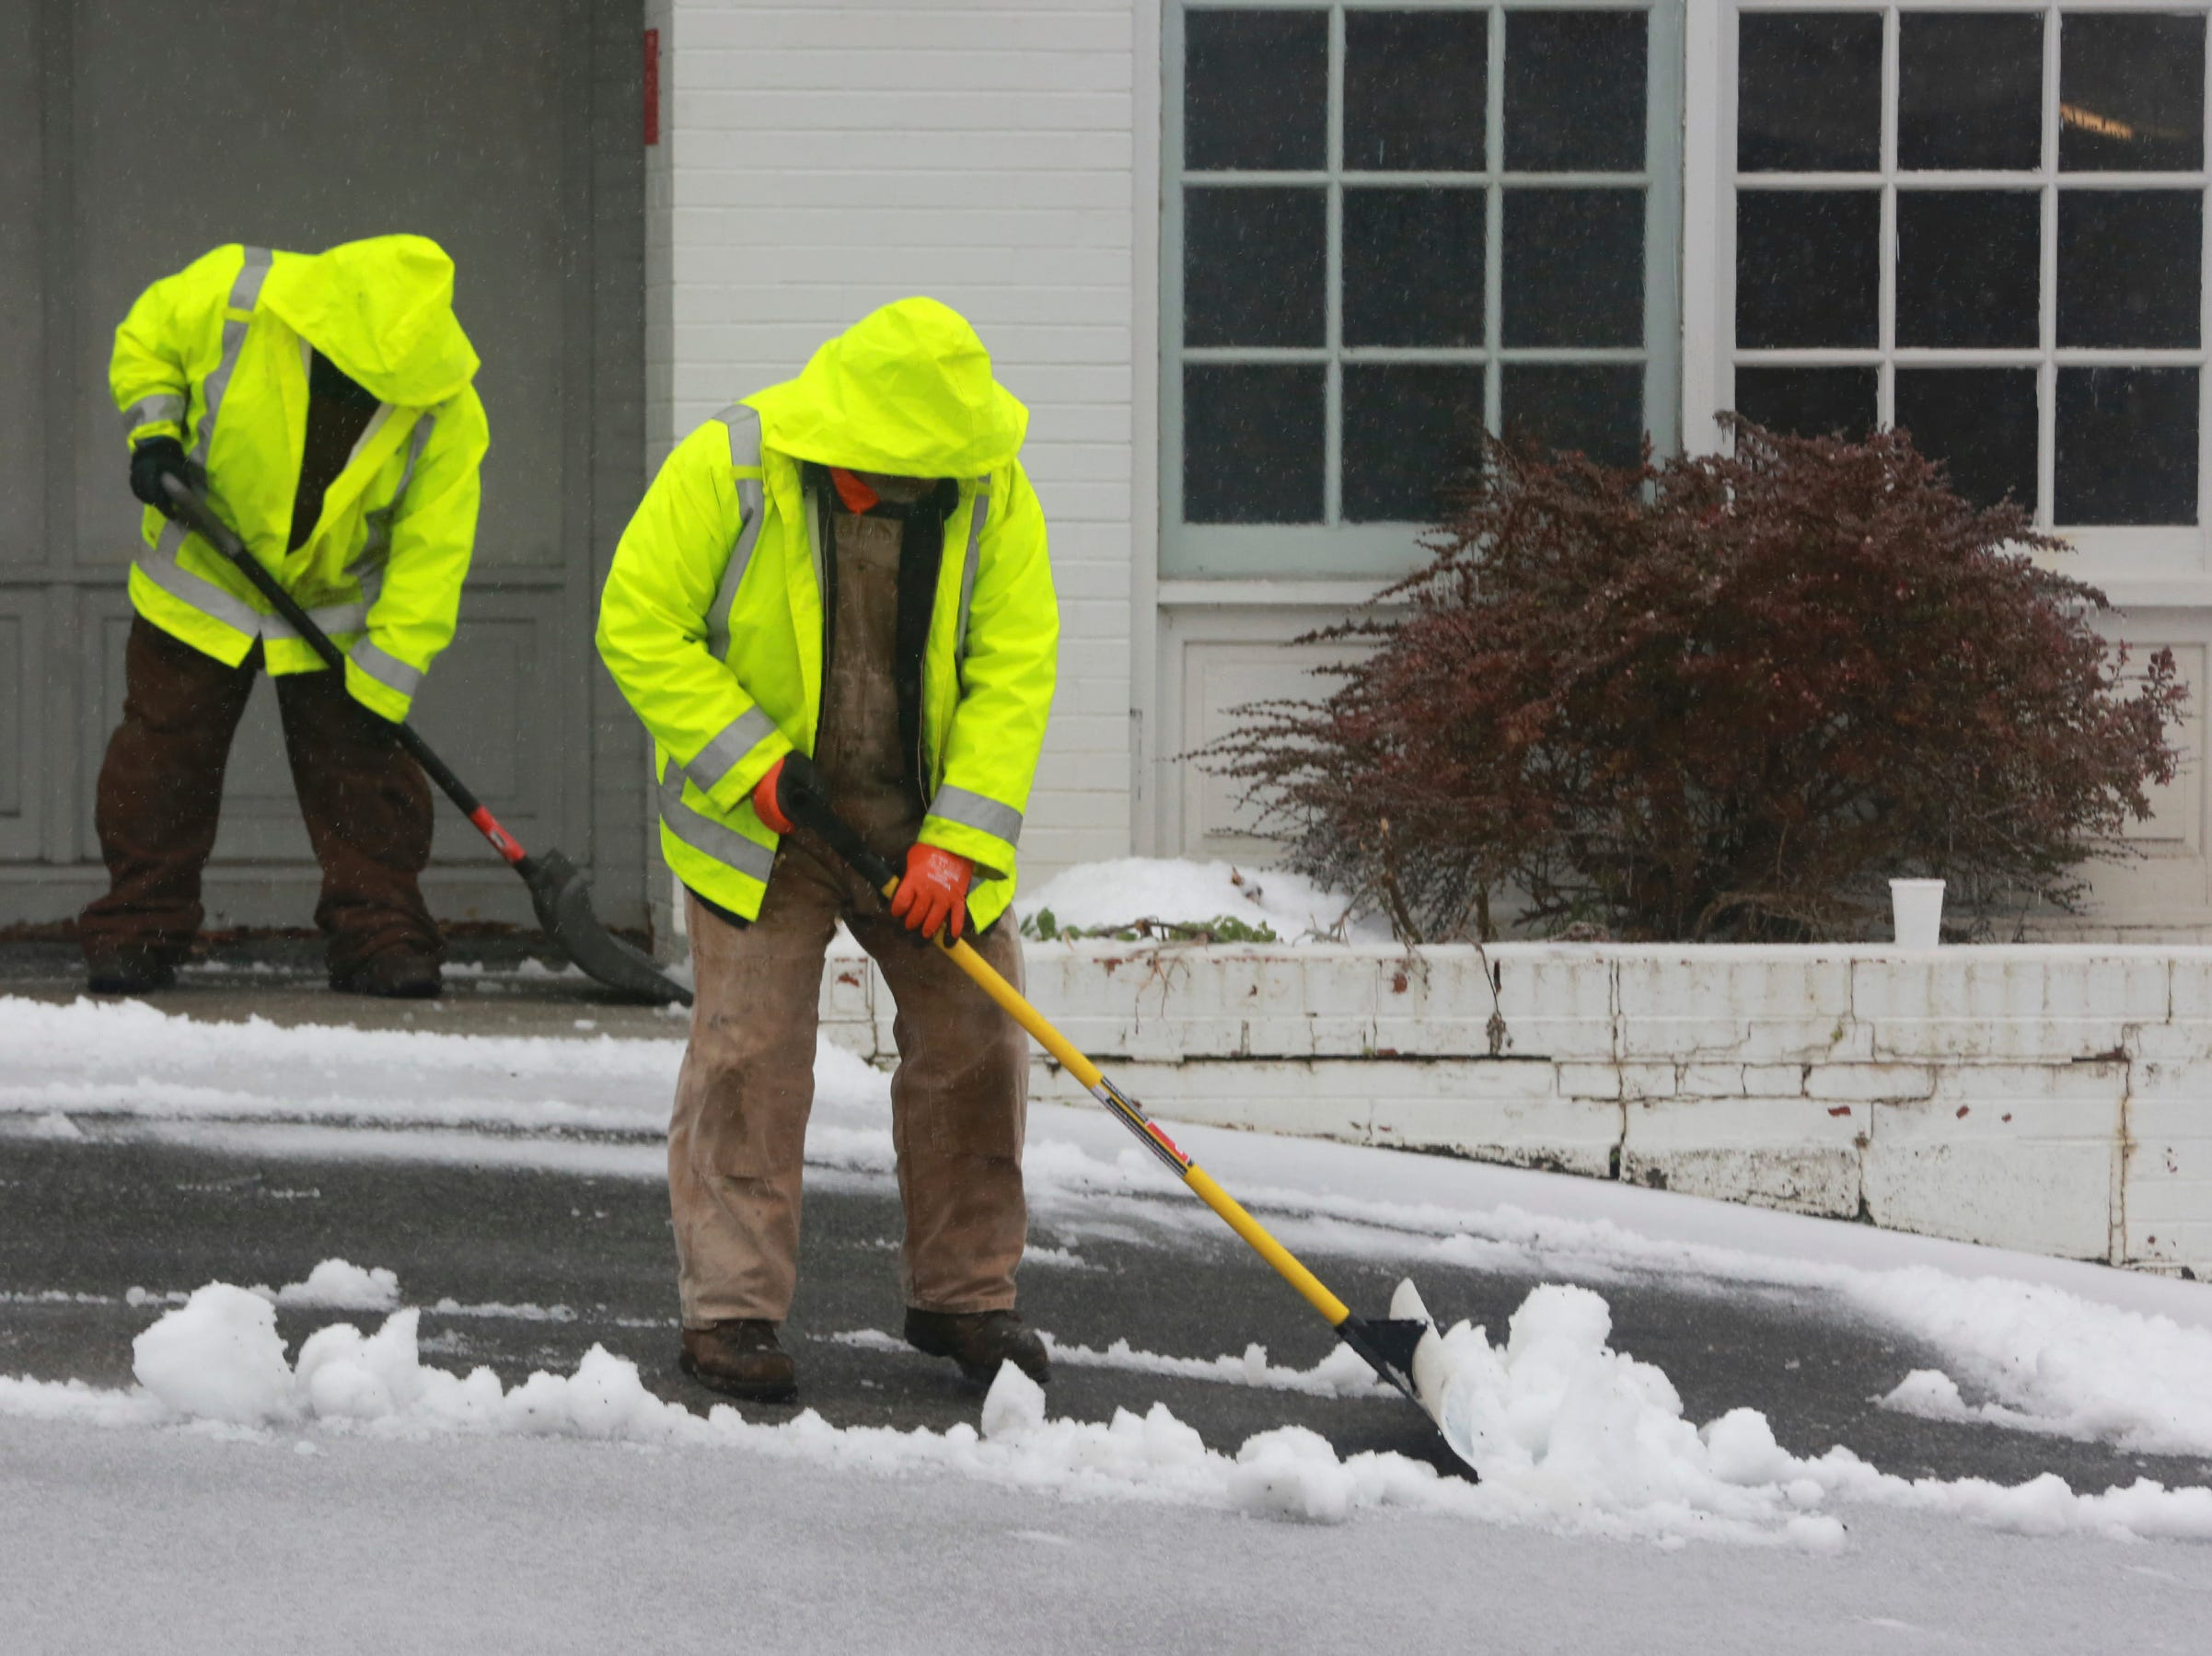 Lewis Dameron, left and Paul James, of Montgomery County General Services, shovel the steps and parking lot of a county property on North Franklin Street in downtown, Christiansburg, Va., Thursday, Nov. 15 2018. A pre-winter storm moved across the eastern half of the country Thursday, slamming parts of the South and lower Midwest on the way.